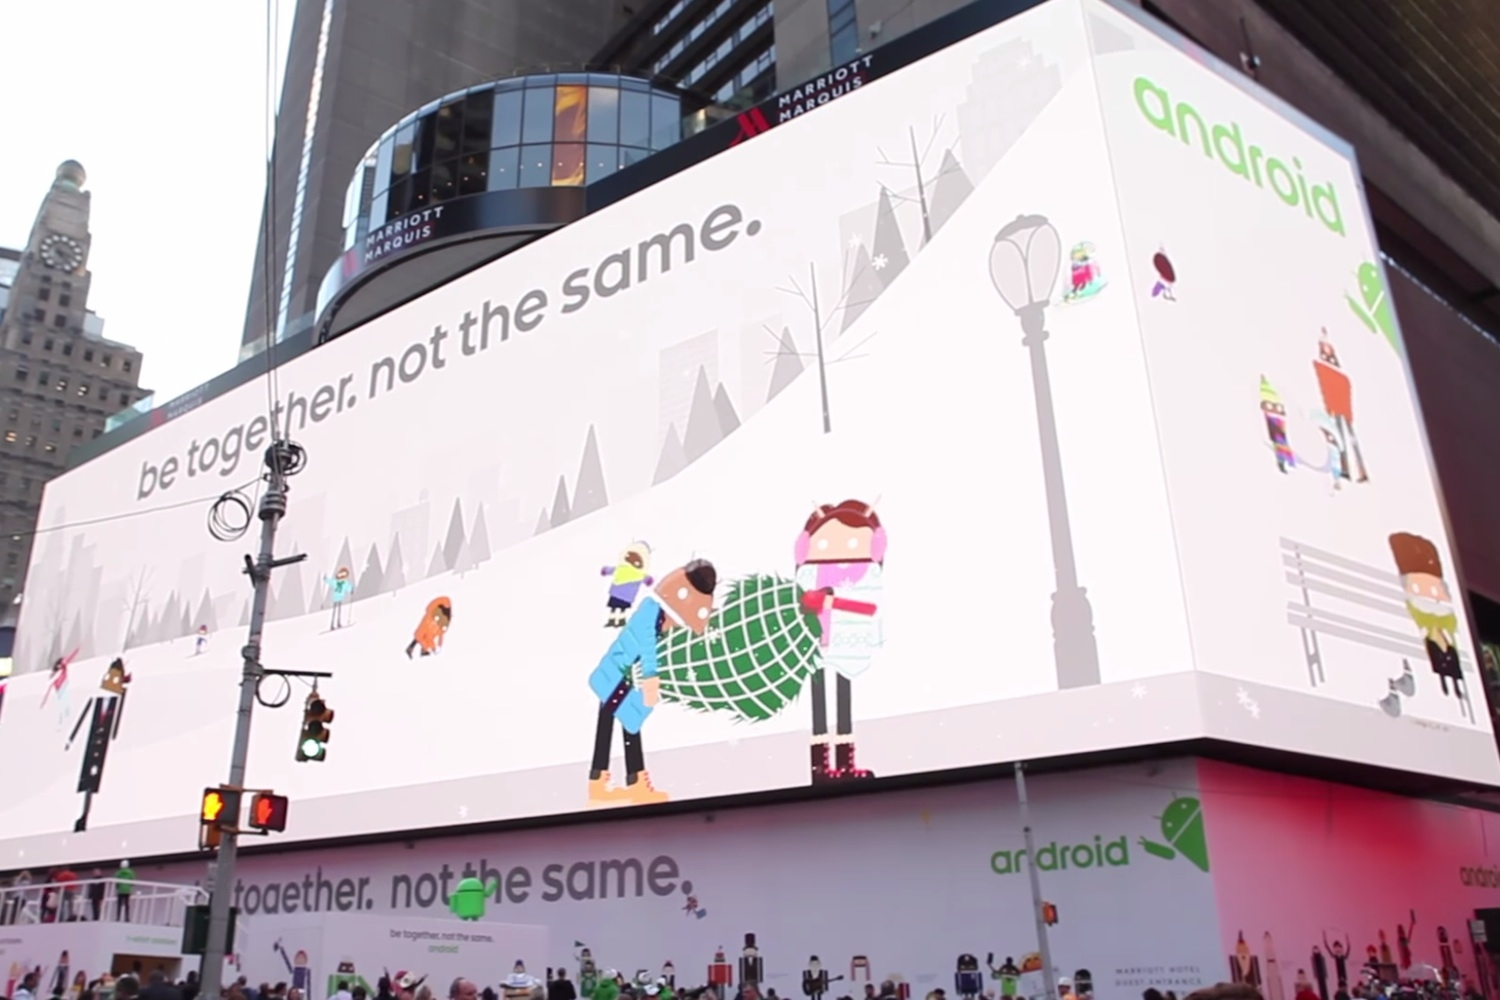 Watch Google's Giant Interactive Ad In Action